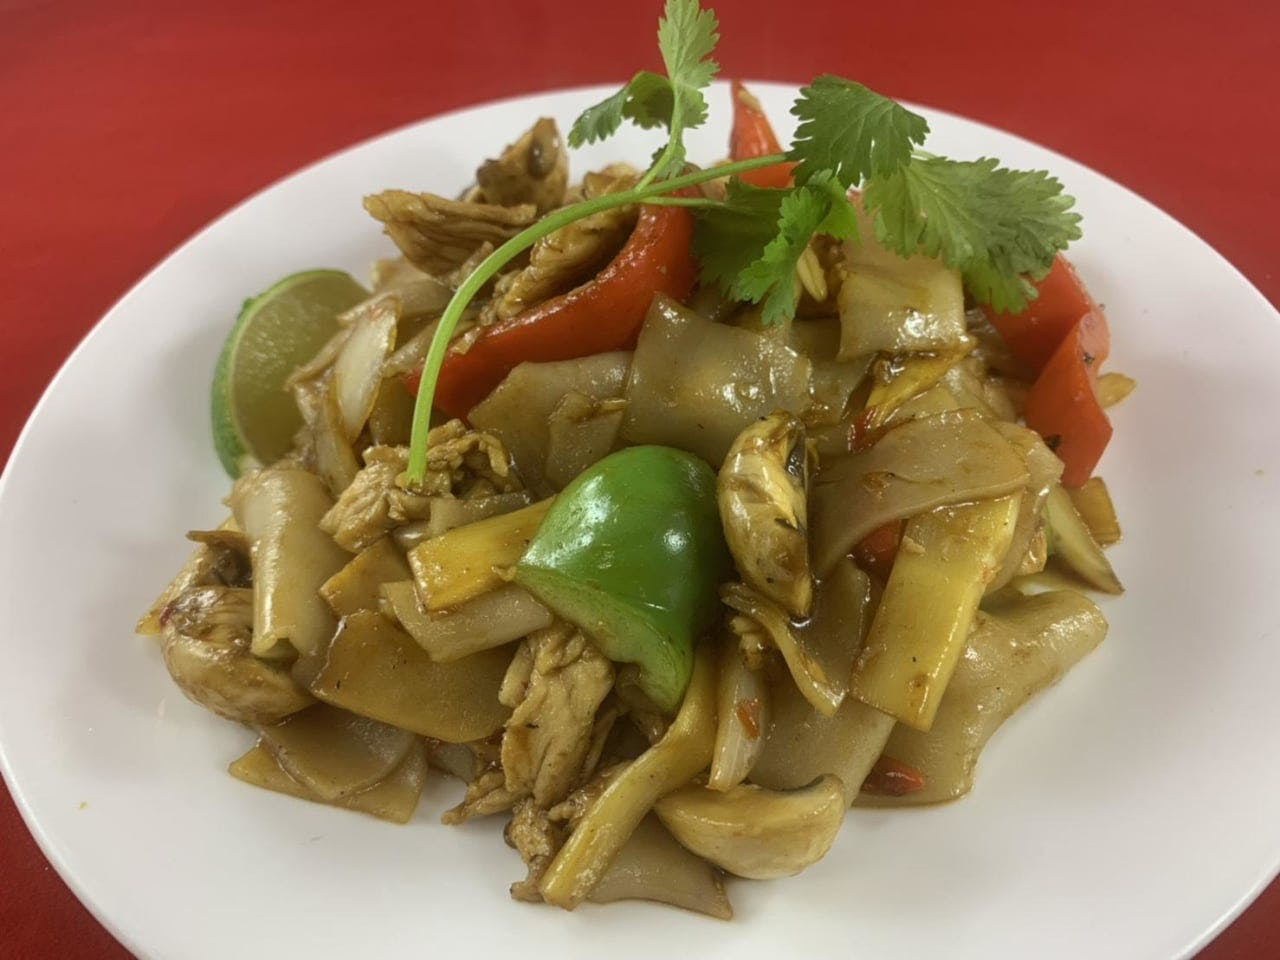 35. Guey Tuey Kee Mao (Dinner) from Sa-Bai Thong - University Ave in Madison, WI